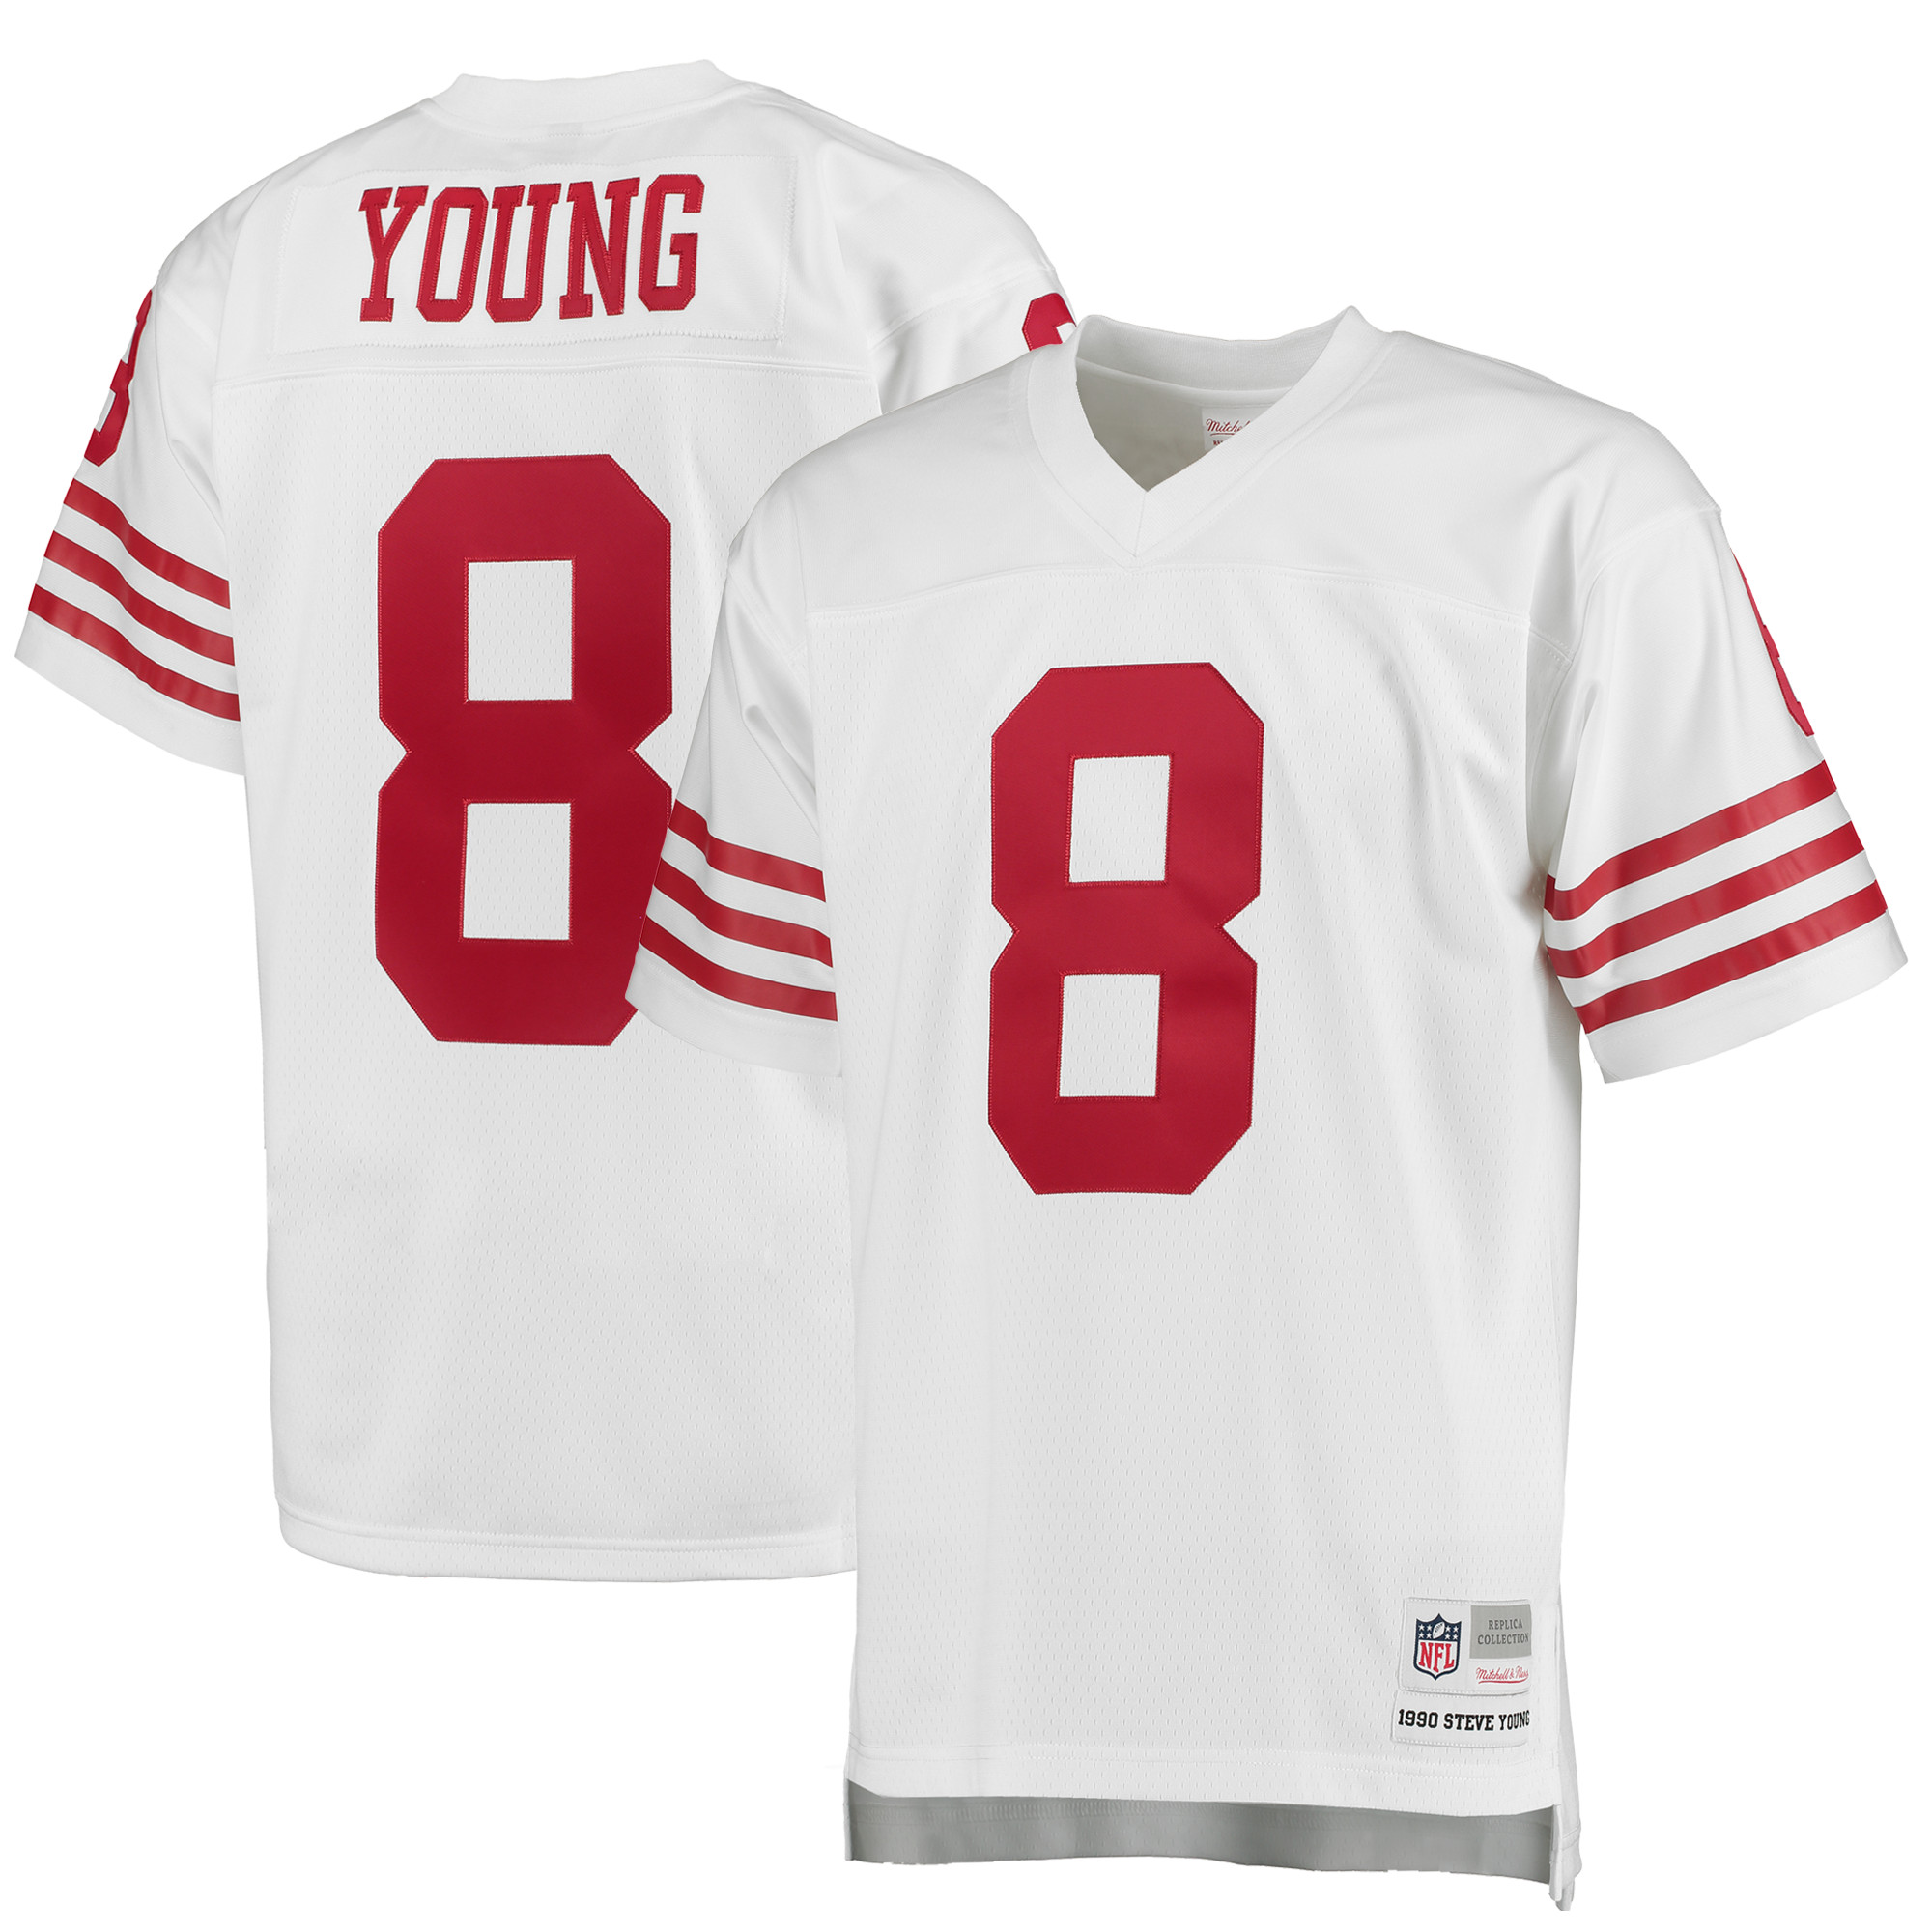 Steve Young San Francisco 49ers Mitchell & Ness 1990 Replica Retired Player Jersey - White